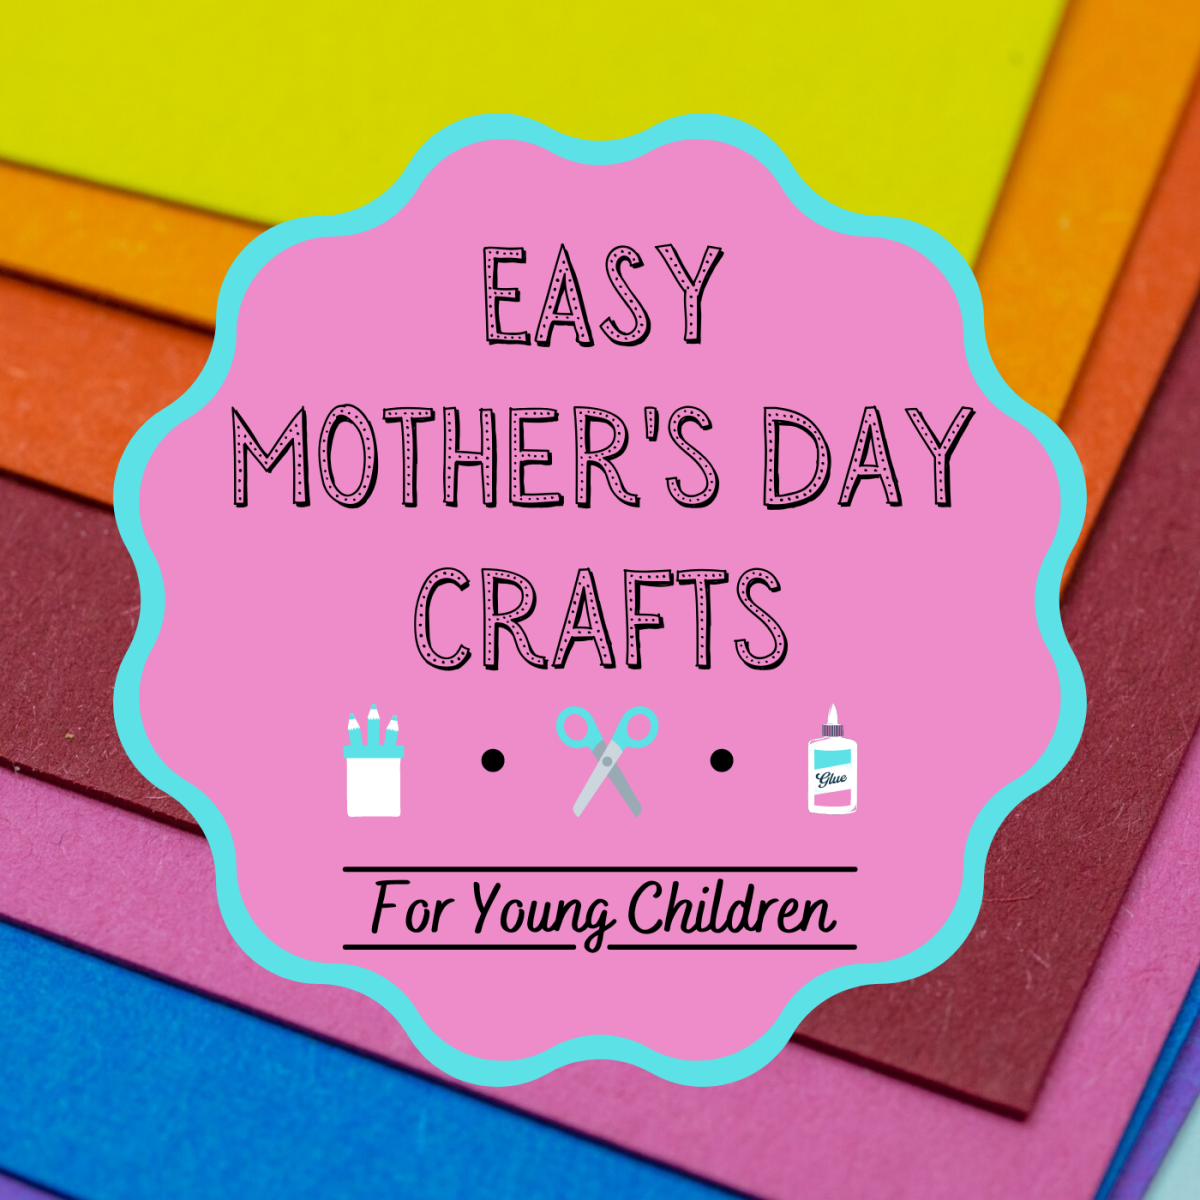 These four crafts are perfect for younger children to do with a parent or teacher.